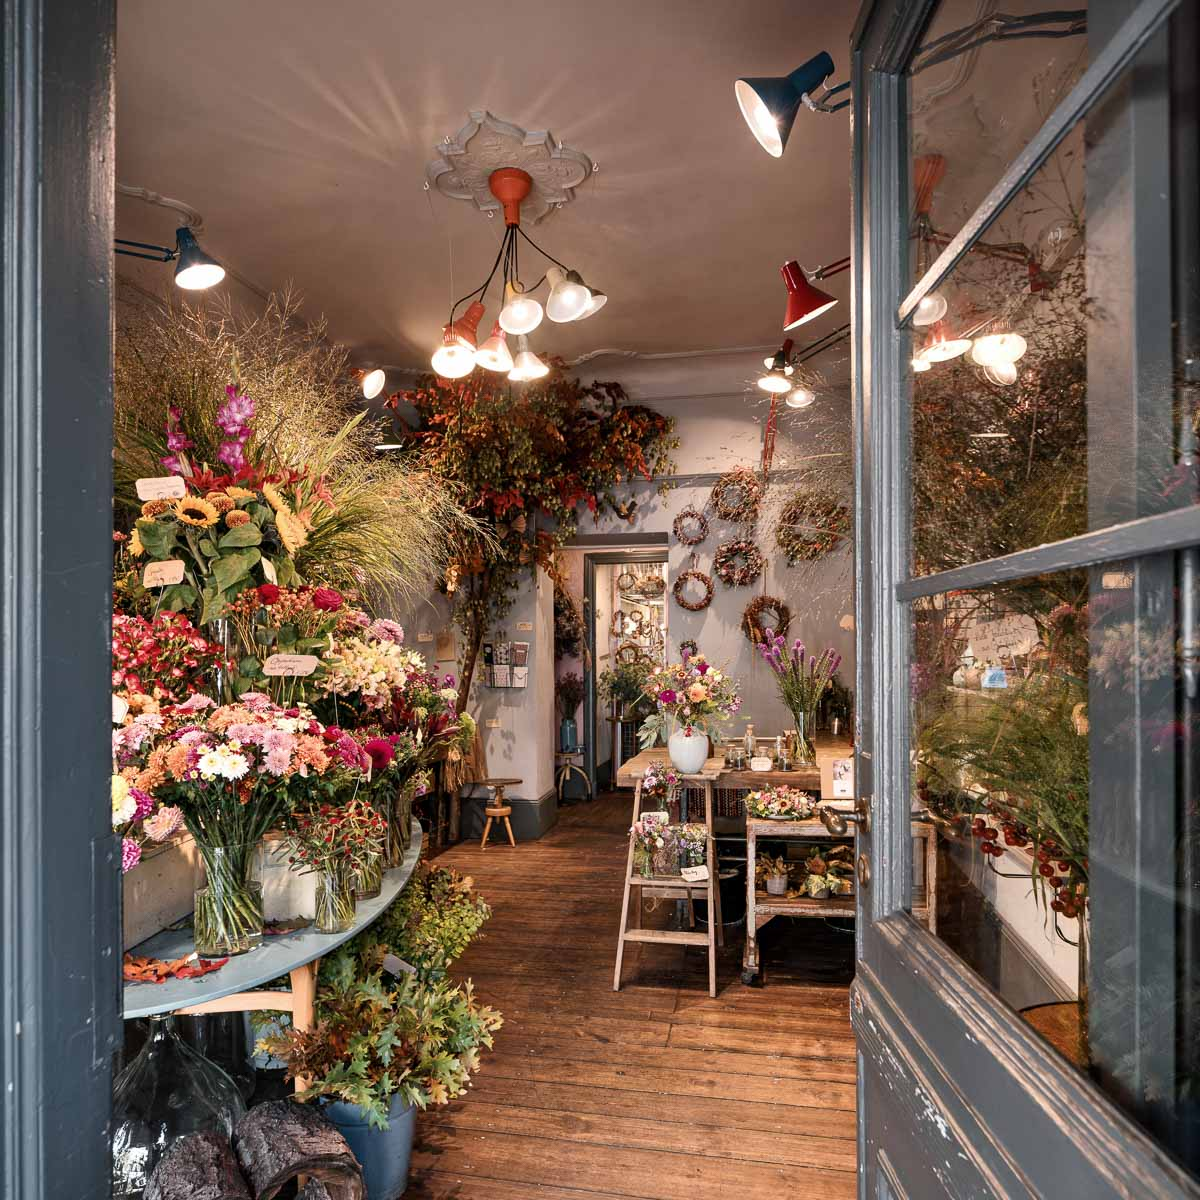 Florist Blumen Goldbeck Berlin-6